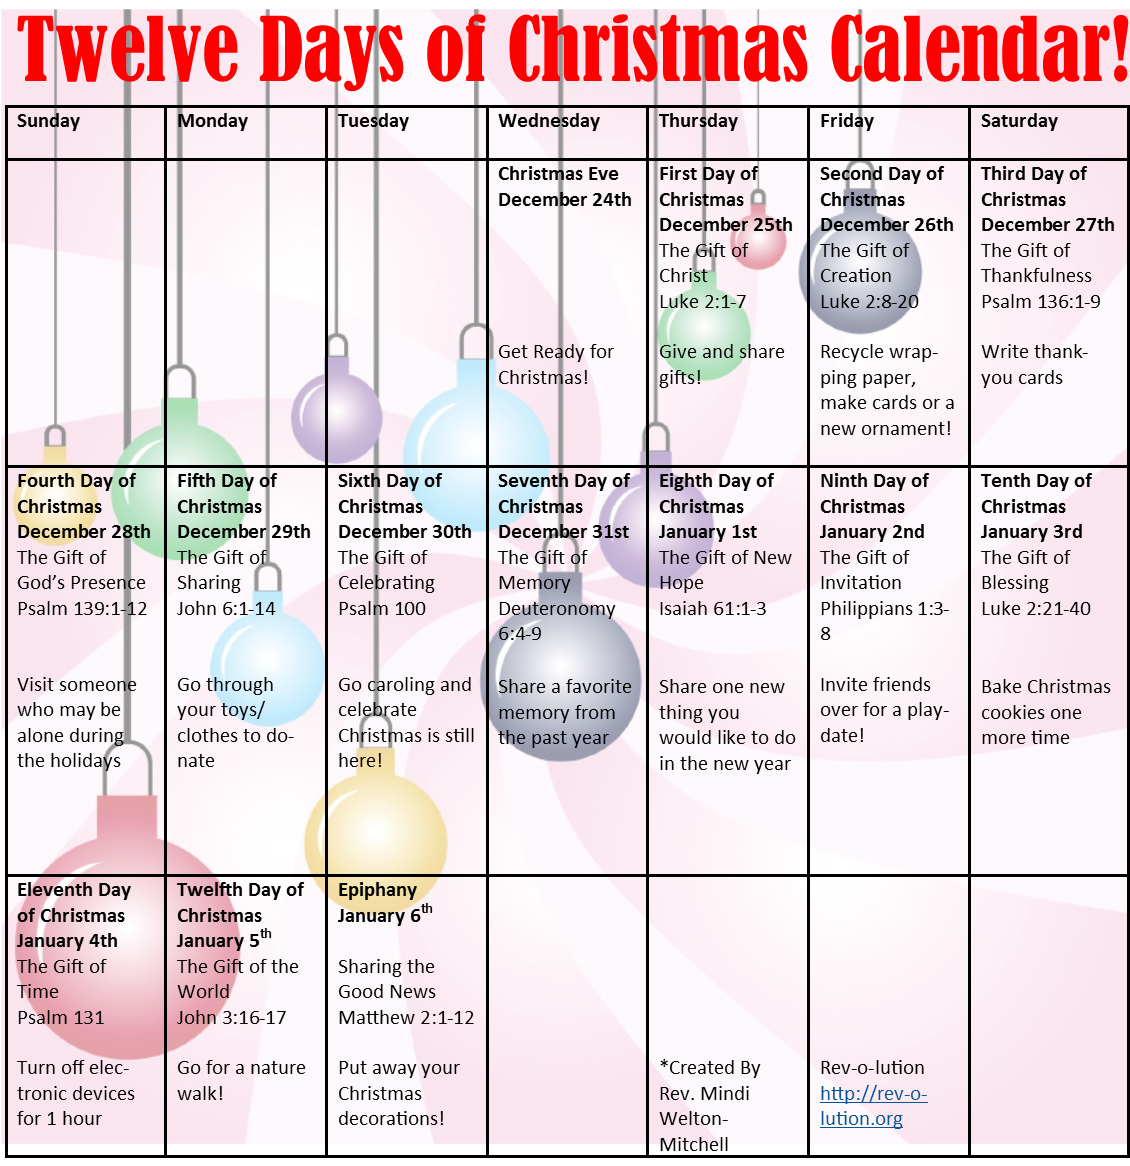 12 Days Of Christmas Calendar New 2014 2015 Christmas Printable Templates Christmas Calendar 12 Days Of Christmas